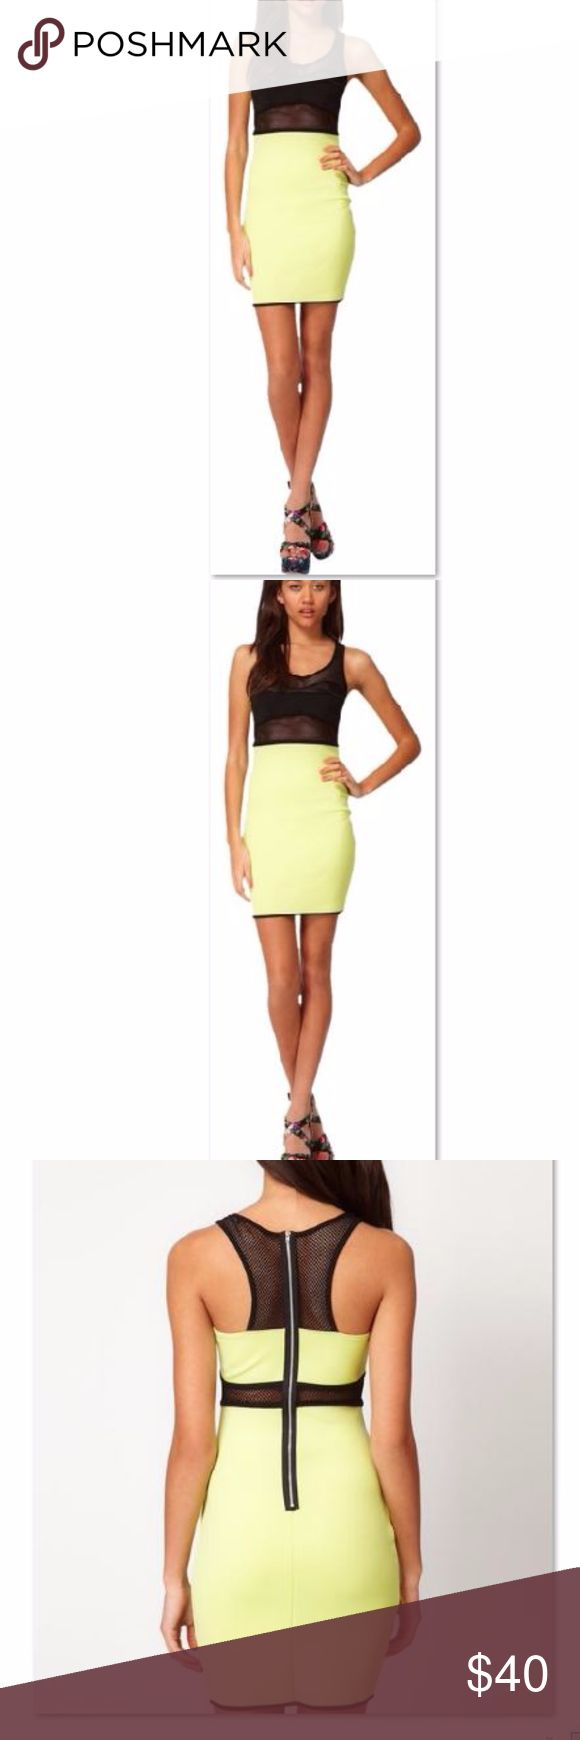 River Island Body-conscious With Mesh Straps Sz 6 Black And lime Green/yellow River Body-conscious With Mesh Straps Us Size 6 Dress River Island Dresses Mini